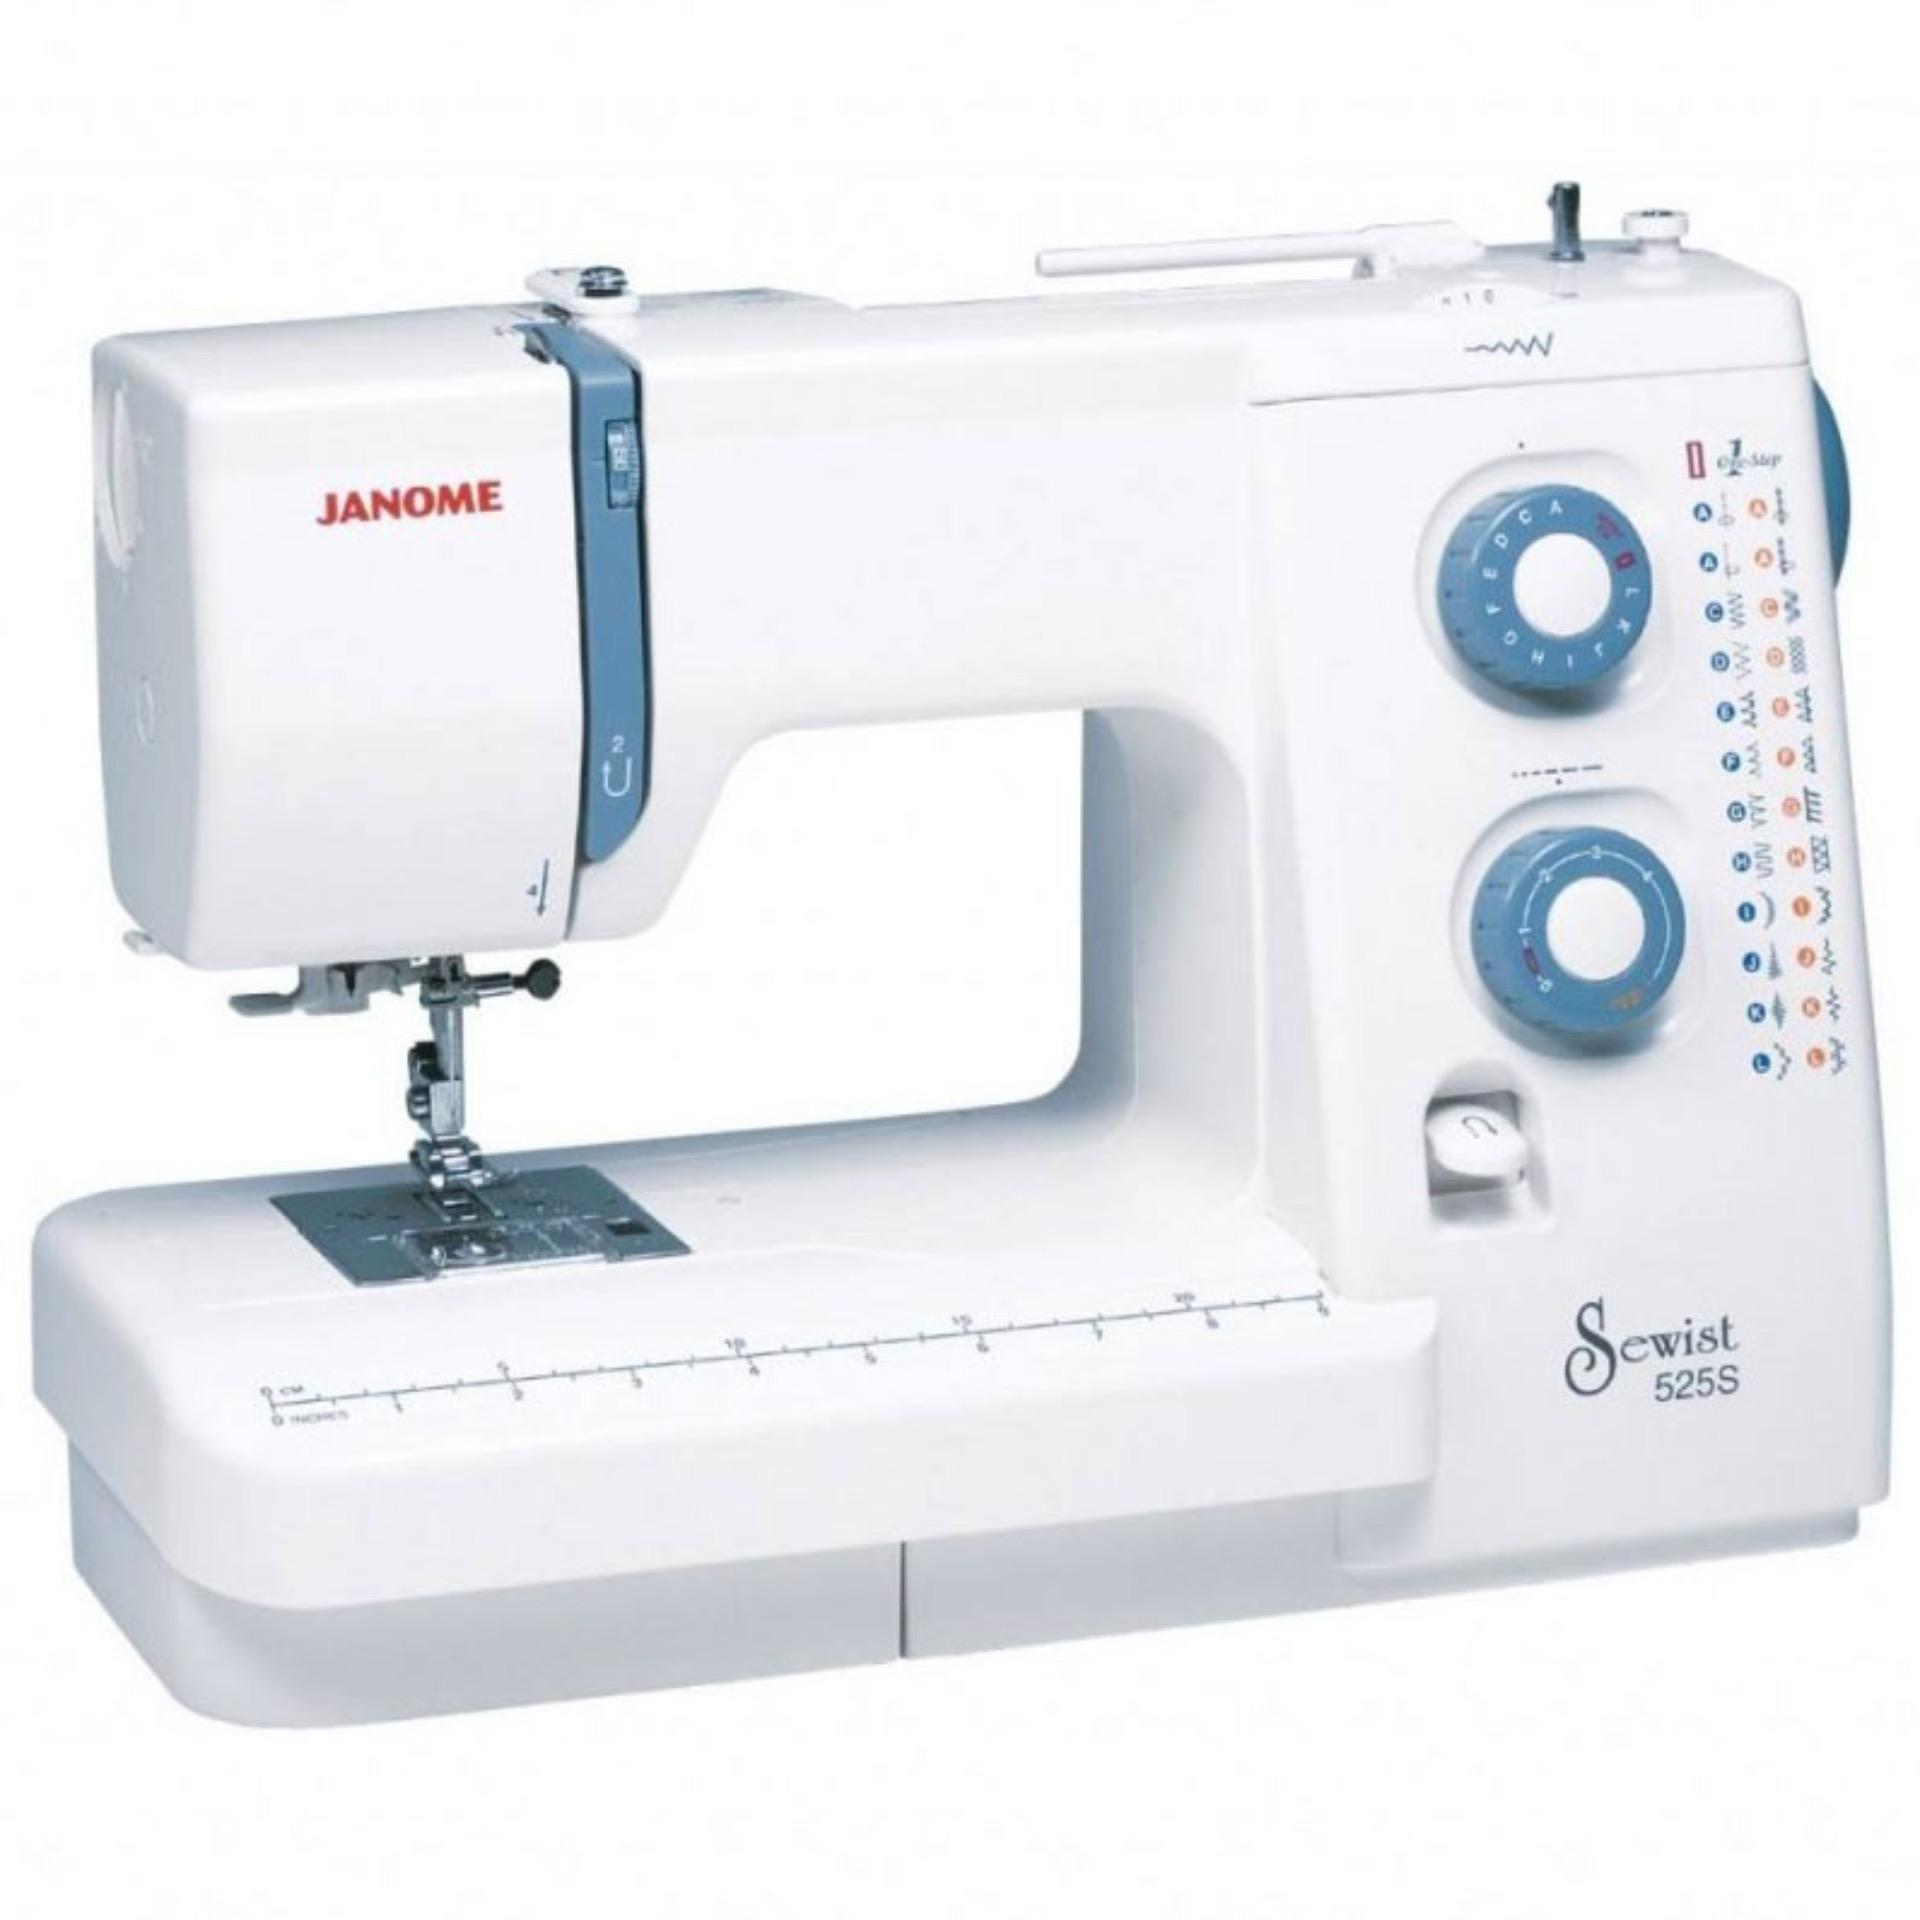 JANOME 525S SEWING MACHINE - Home Appliance & Accessory Singapore